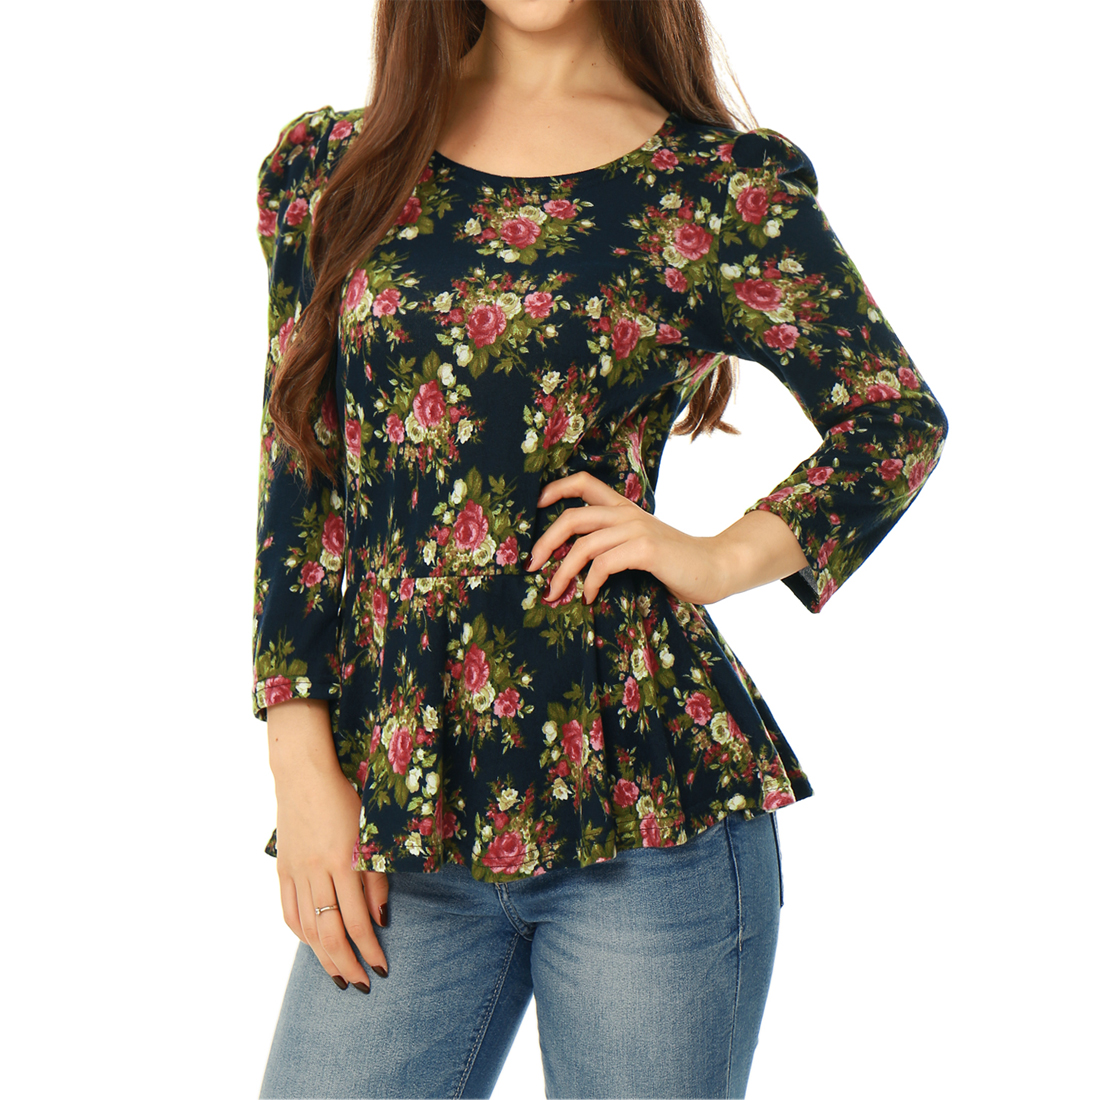 Allegra K Women's Floral Long Sleeve Casual Peplum Tops Slim Fit Blouse Blue (Size XL / 16)